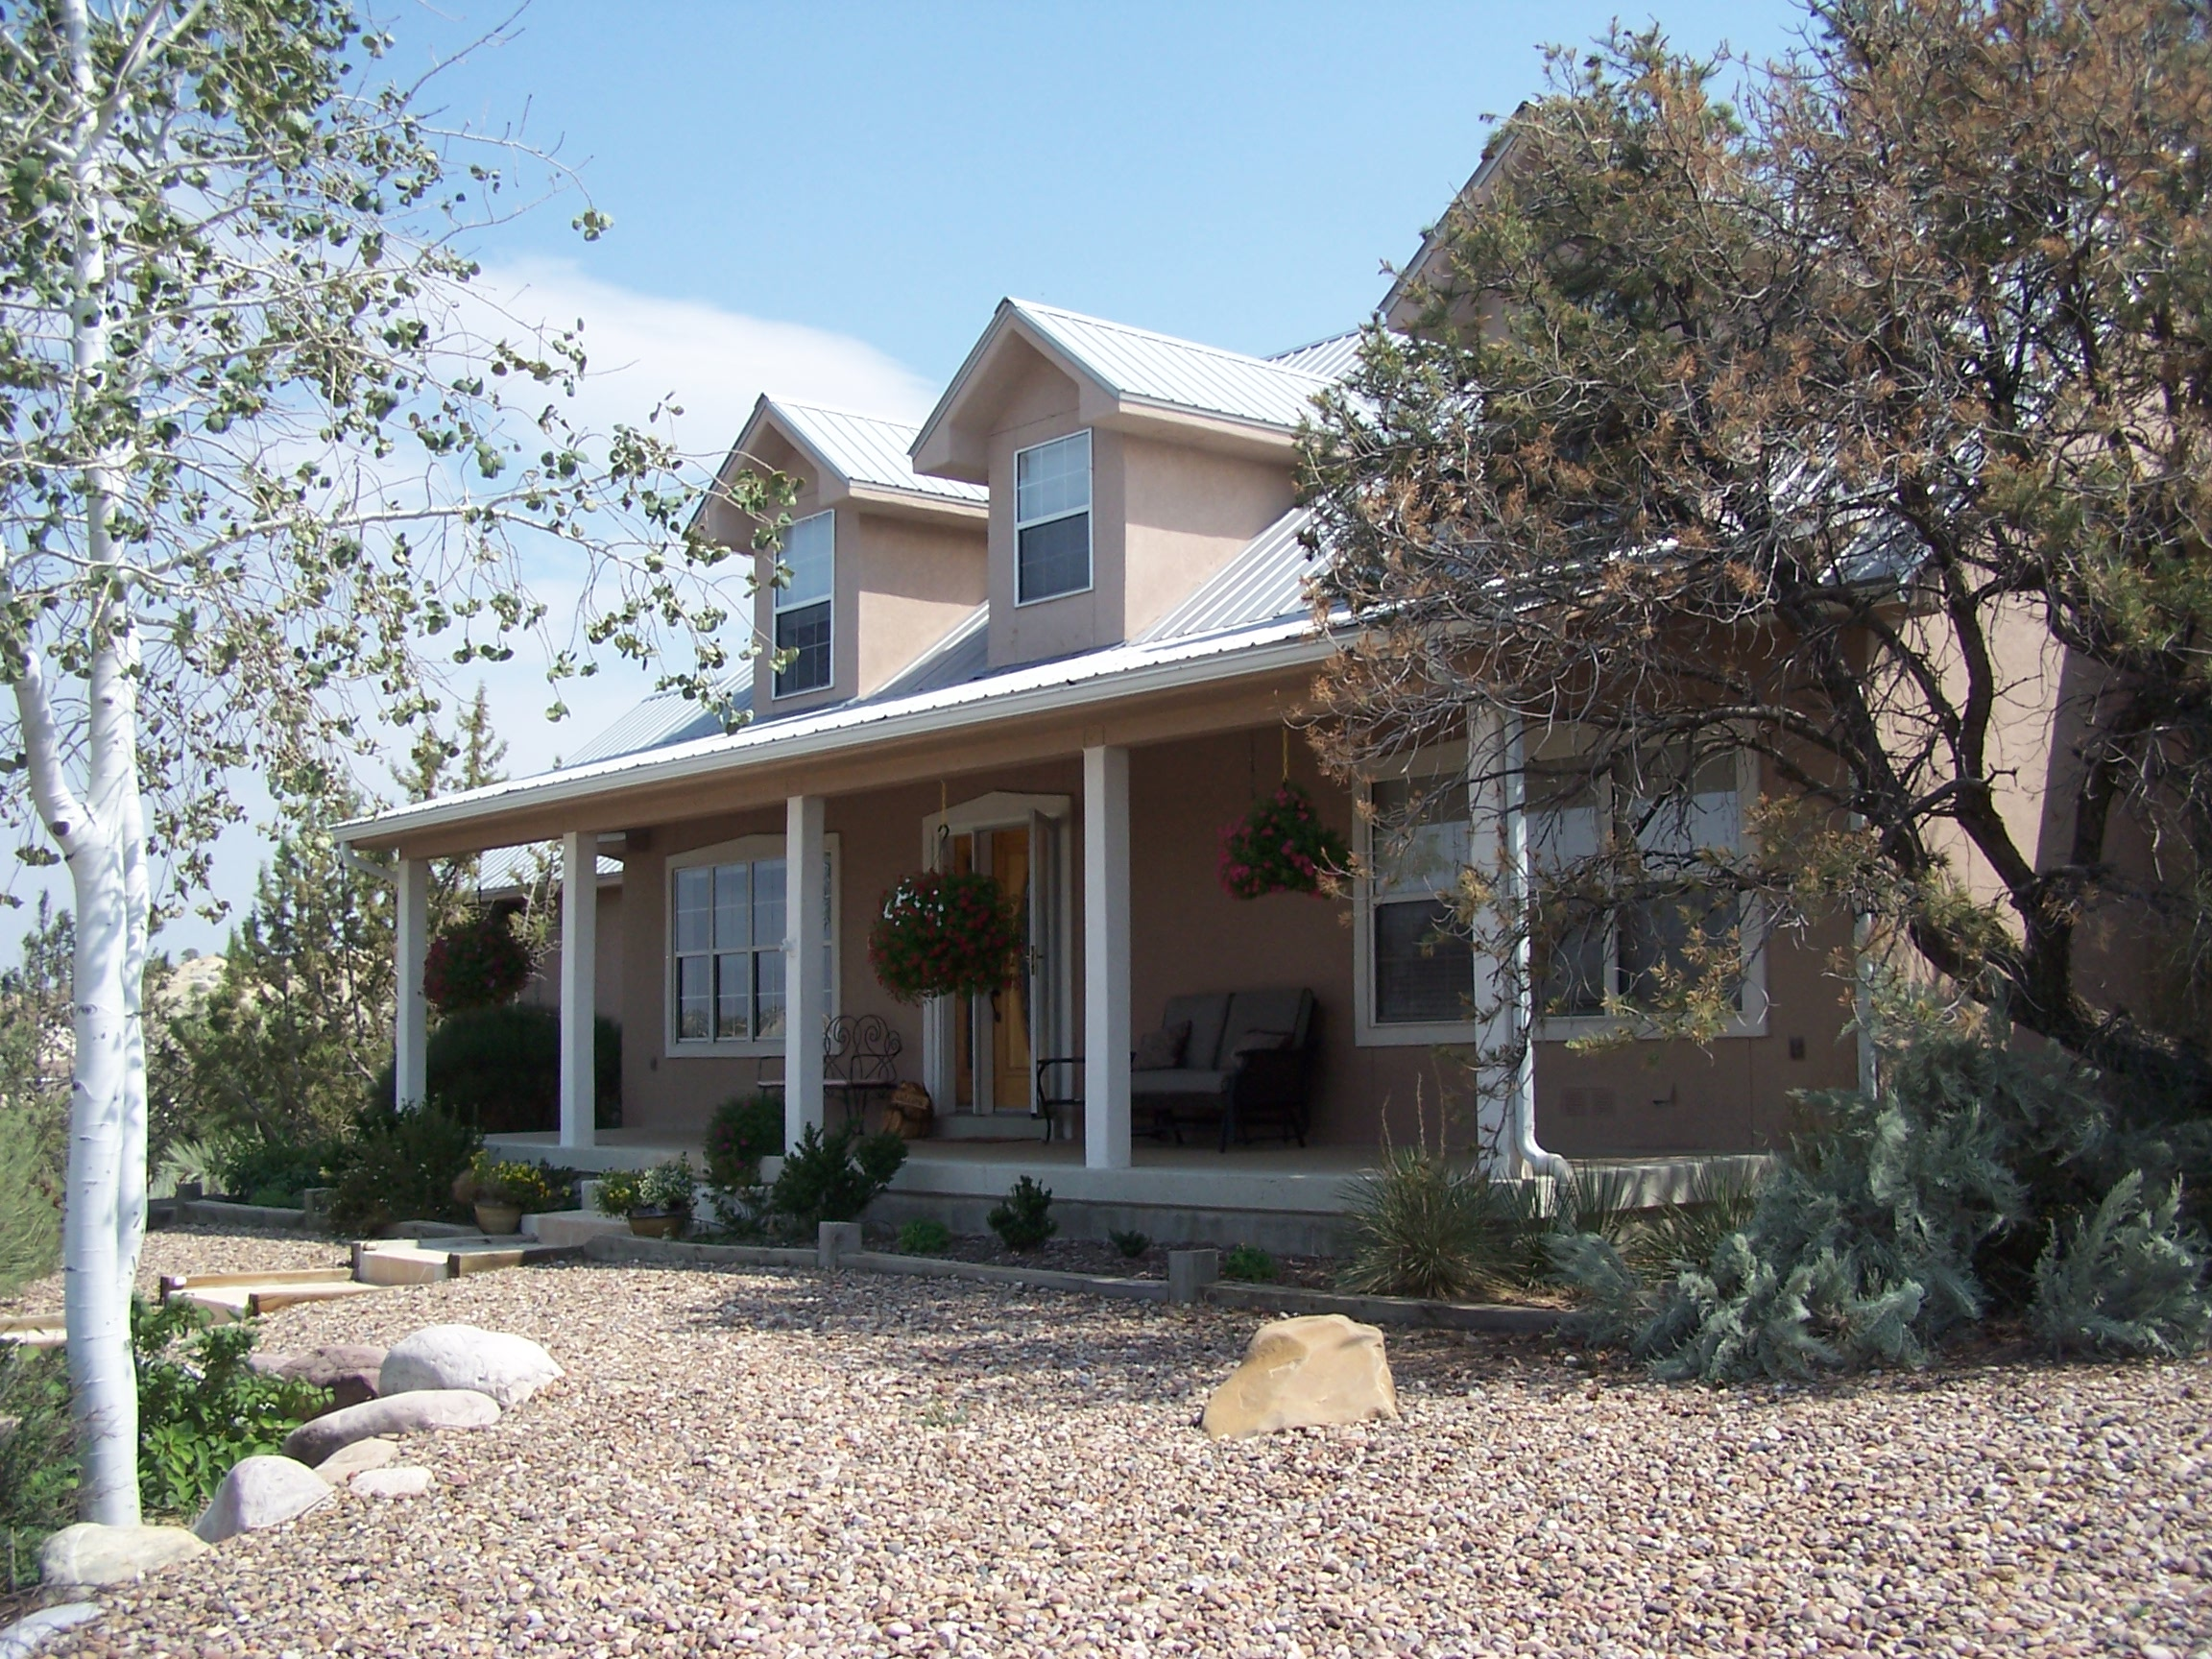 700 Little Rabbit Drive, Aztec, New Mexico 87410